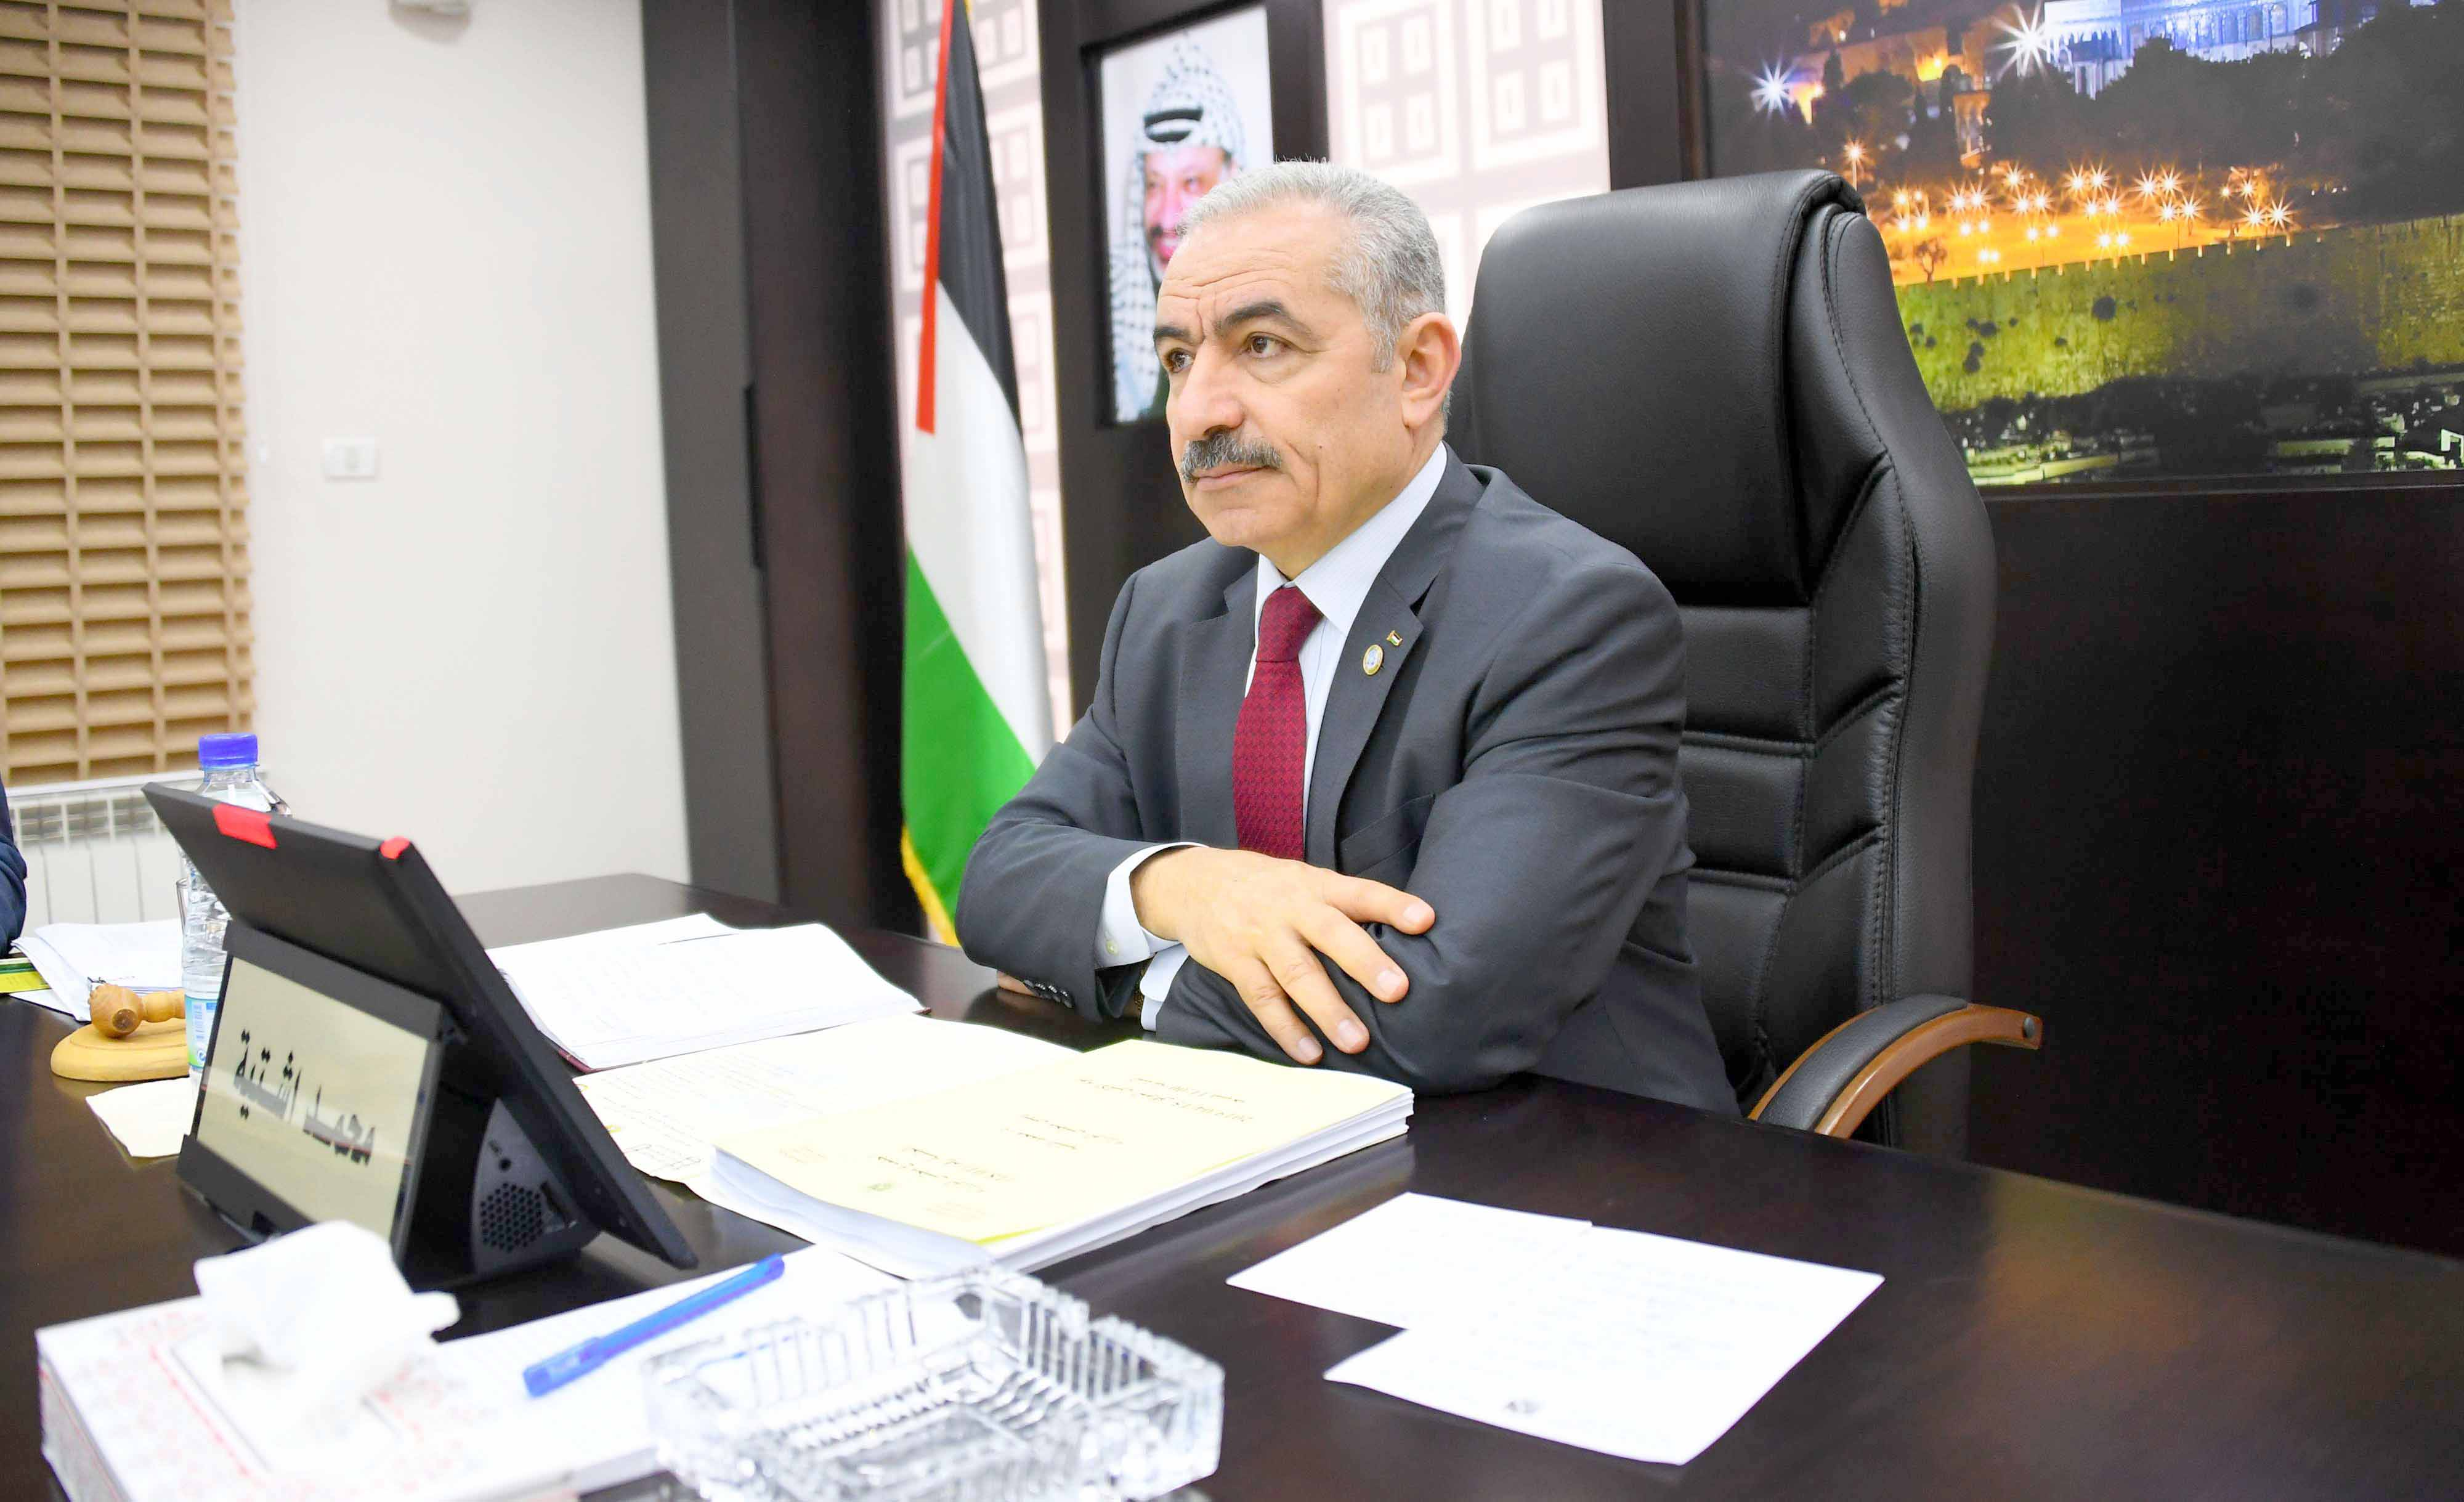 In a tight spot. Palestinian Prime Minister Mohammad Shtayyeh before leading the first cabinet meeting of his newly formed government in Ramallah, April 15. (DPA)